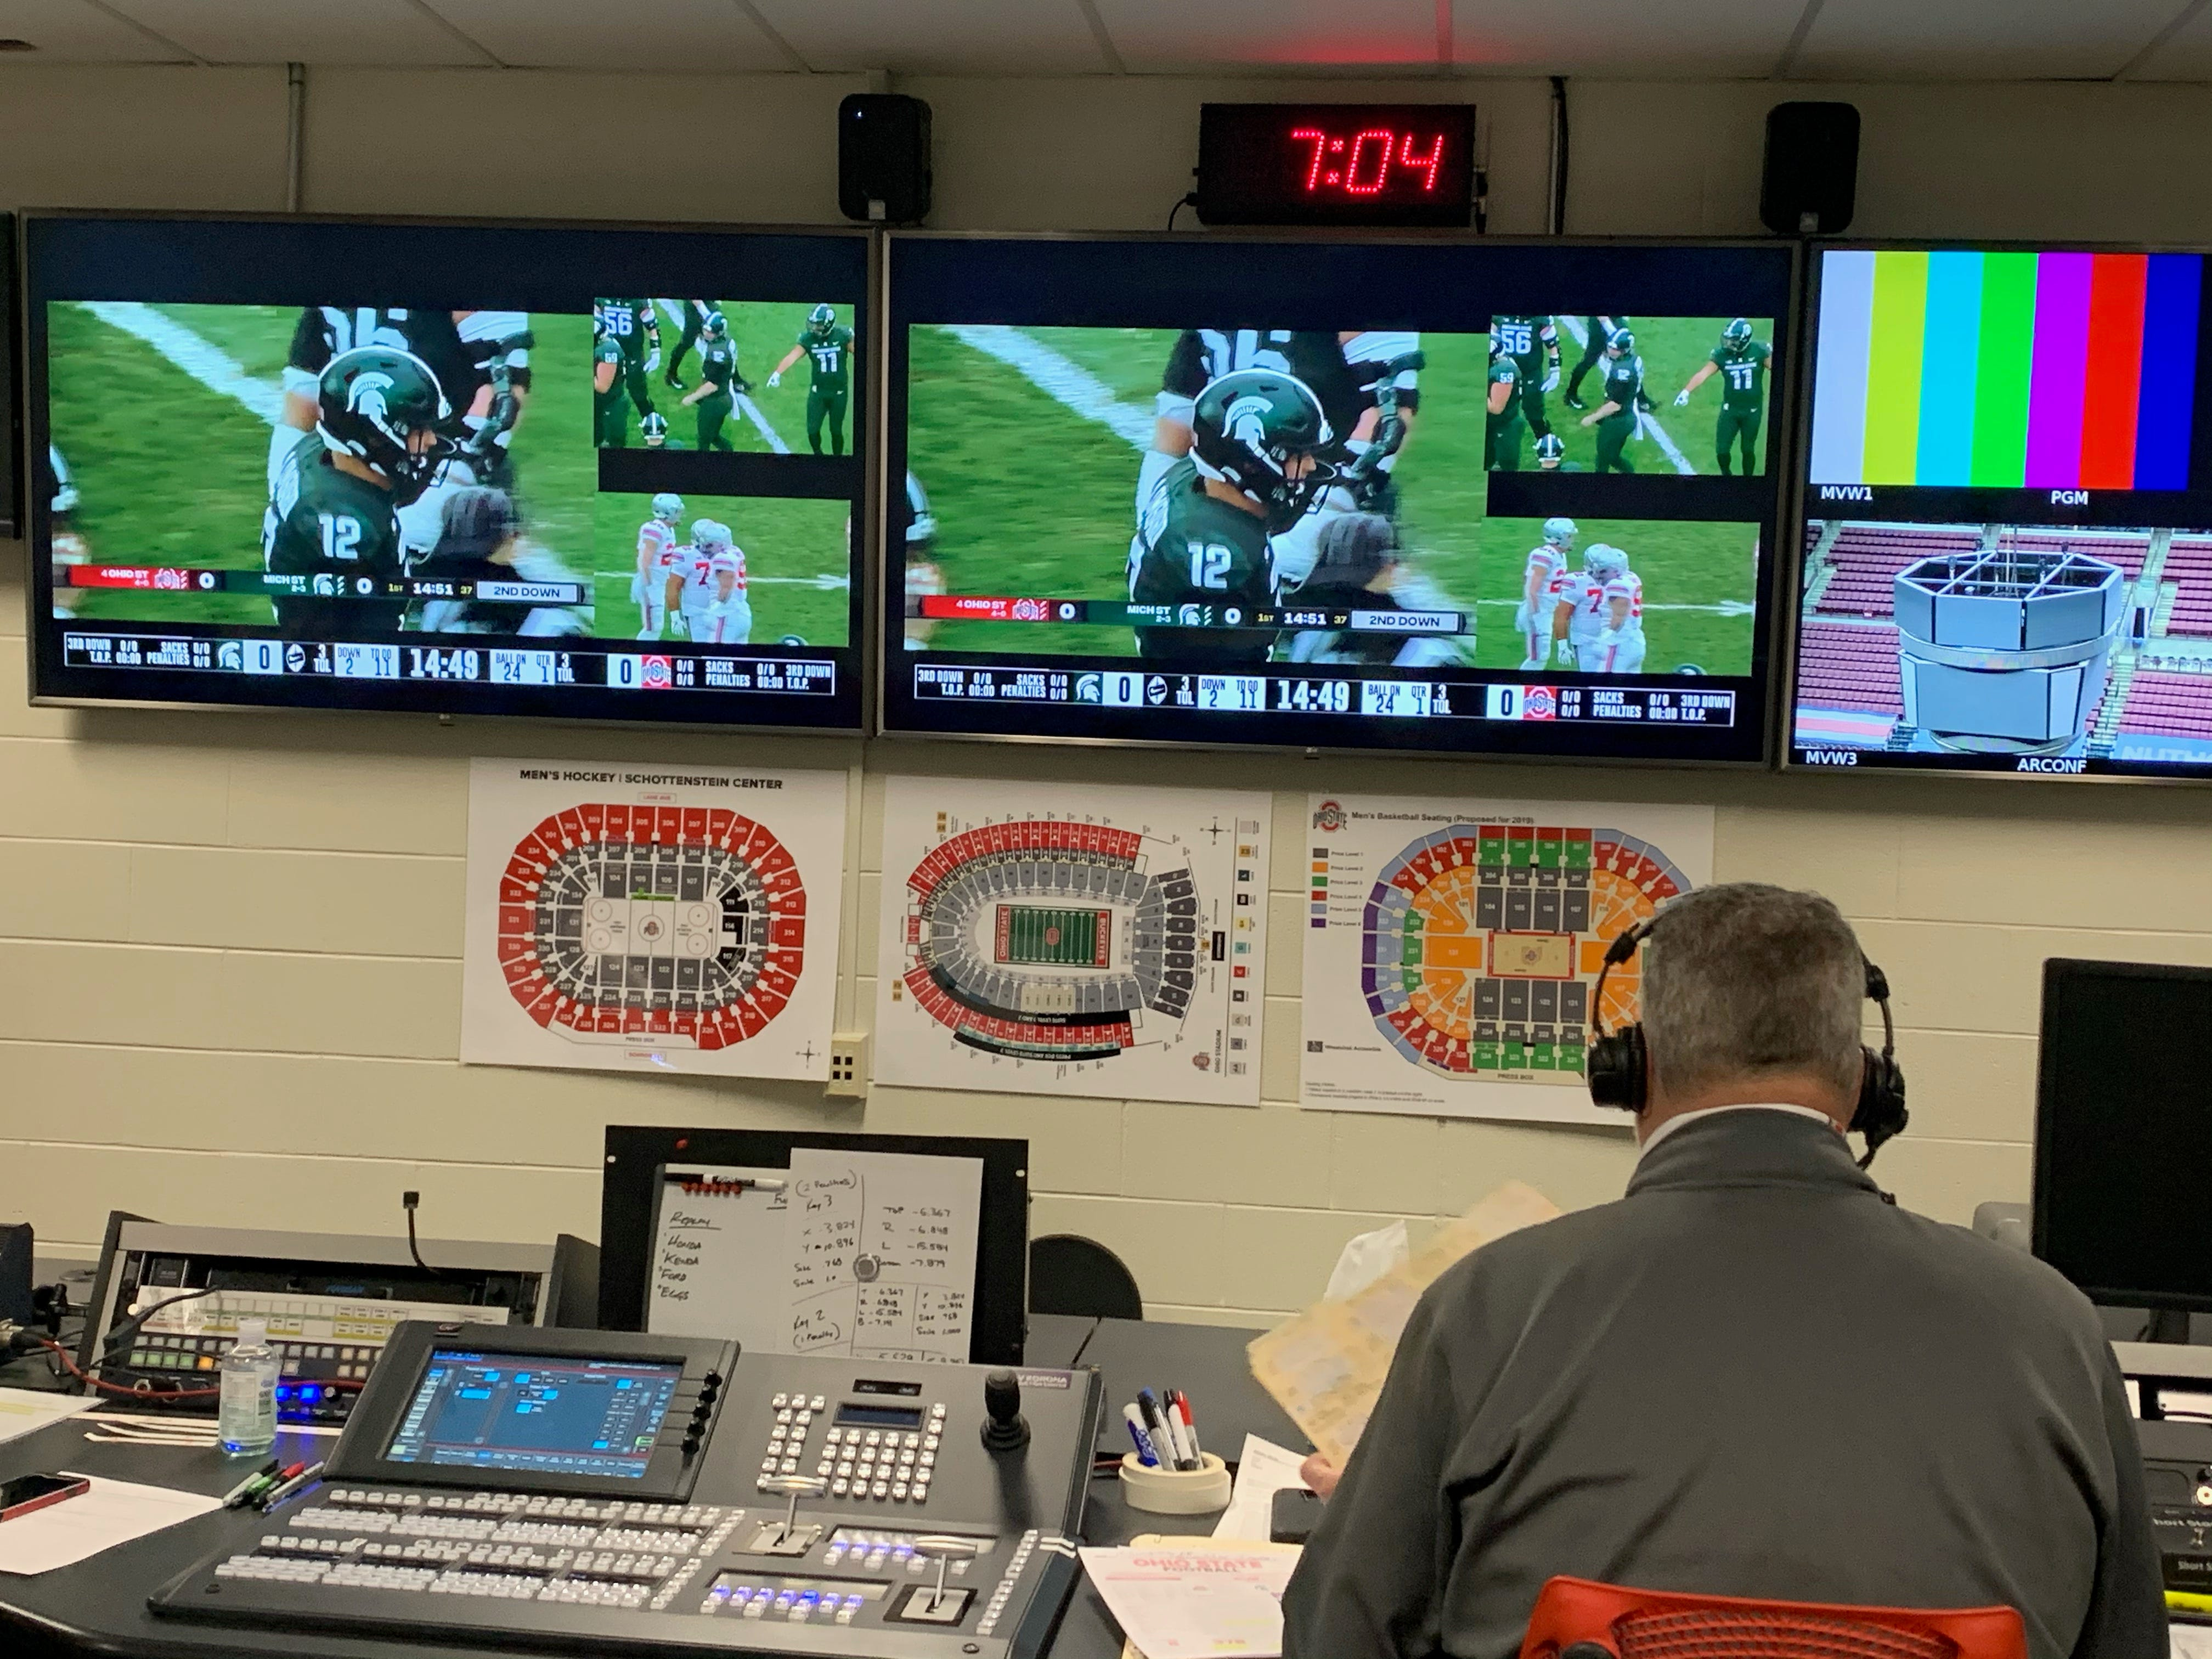 Ohio State football broadcasts go remote amid COVID-19 restrictions